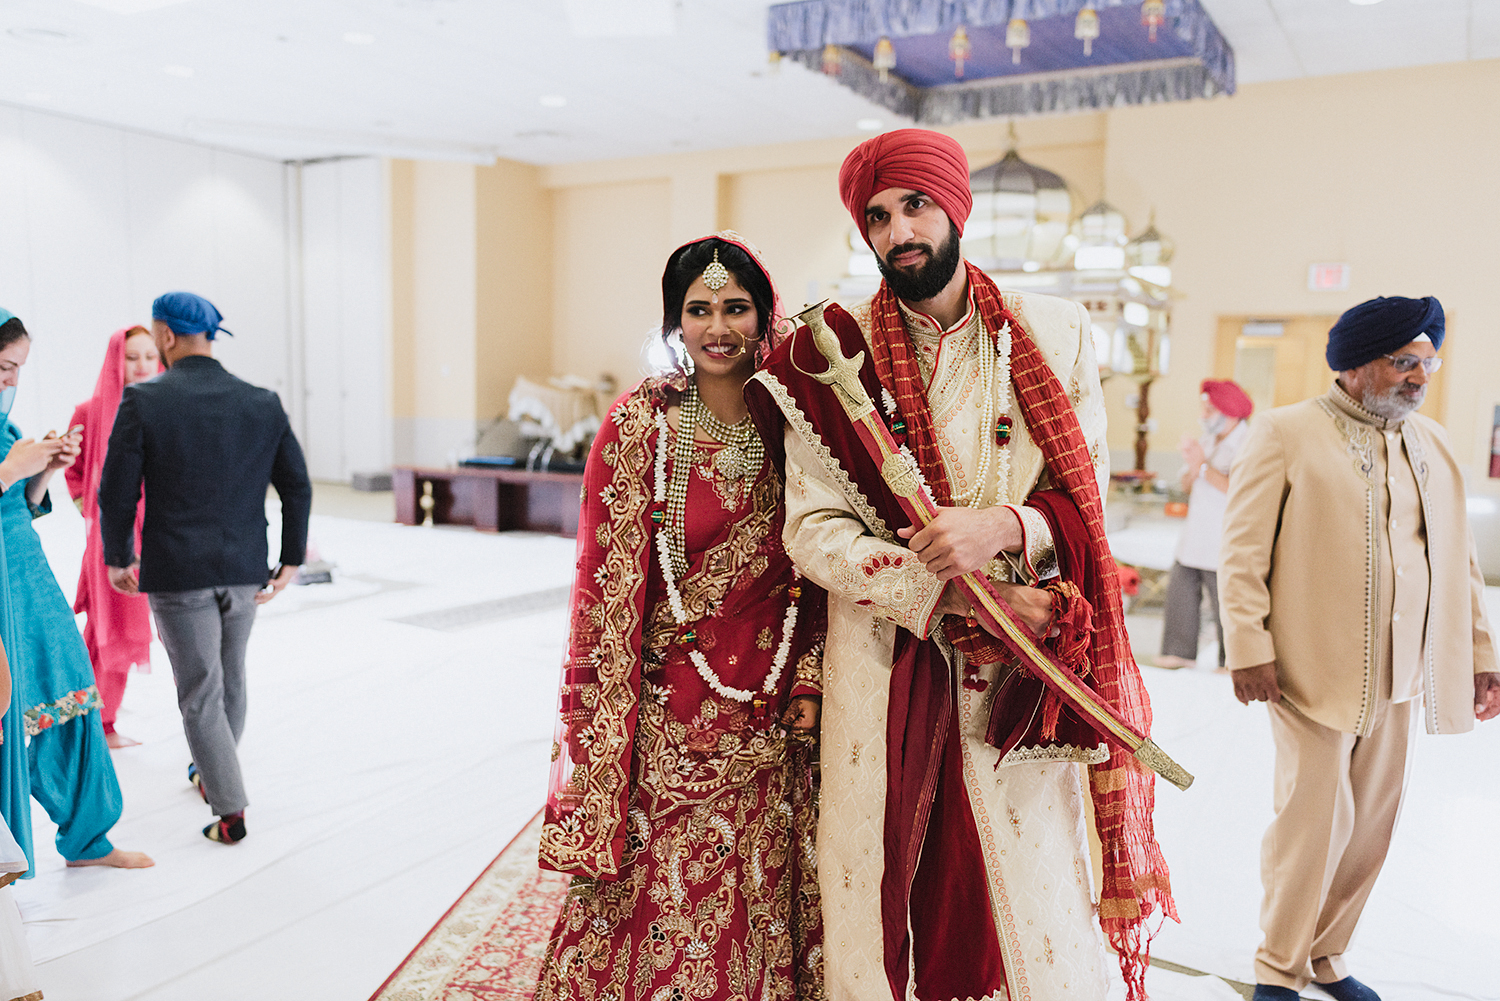 Toronto-Photojournalism-wedding-photographers-3B-Photography-Candid-Documentary-Film-Photography-Analog-Ontario-Hamilton-Port-Perry-Venue-temple-ceremony-sikh-tradition-bride-and-groom-marriage-exiting.jpg